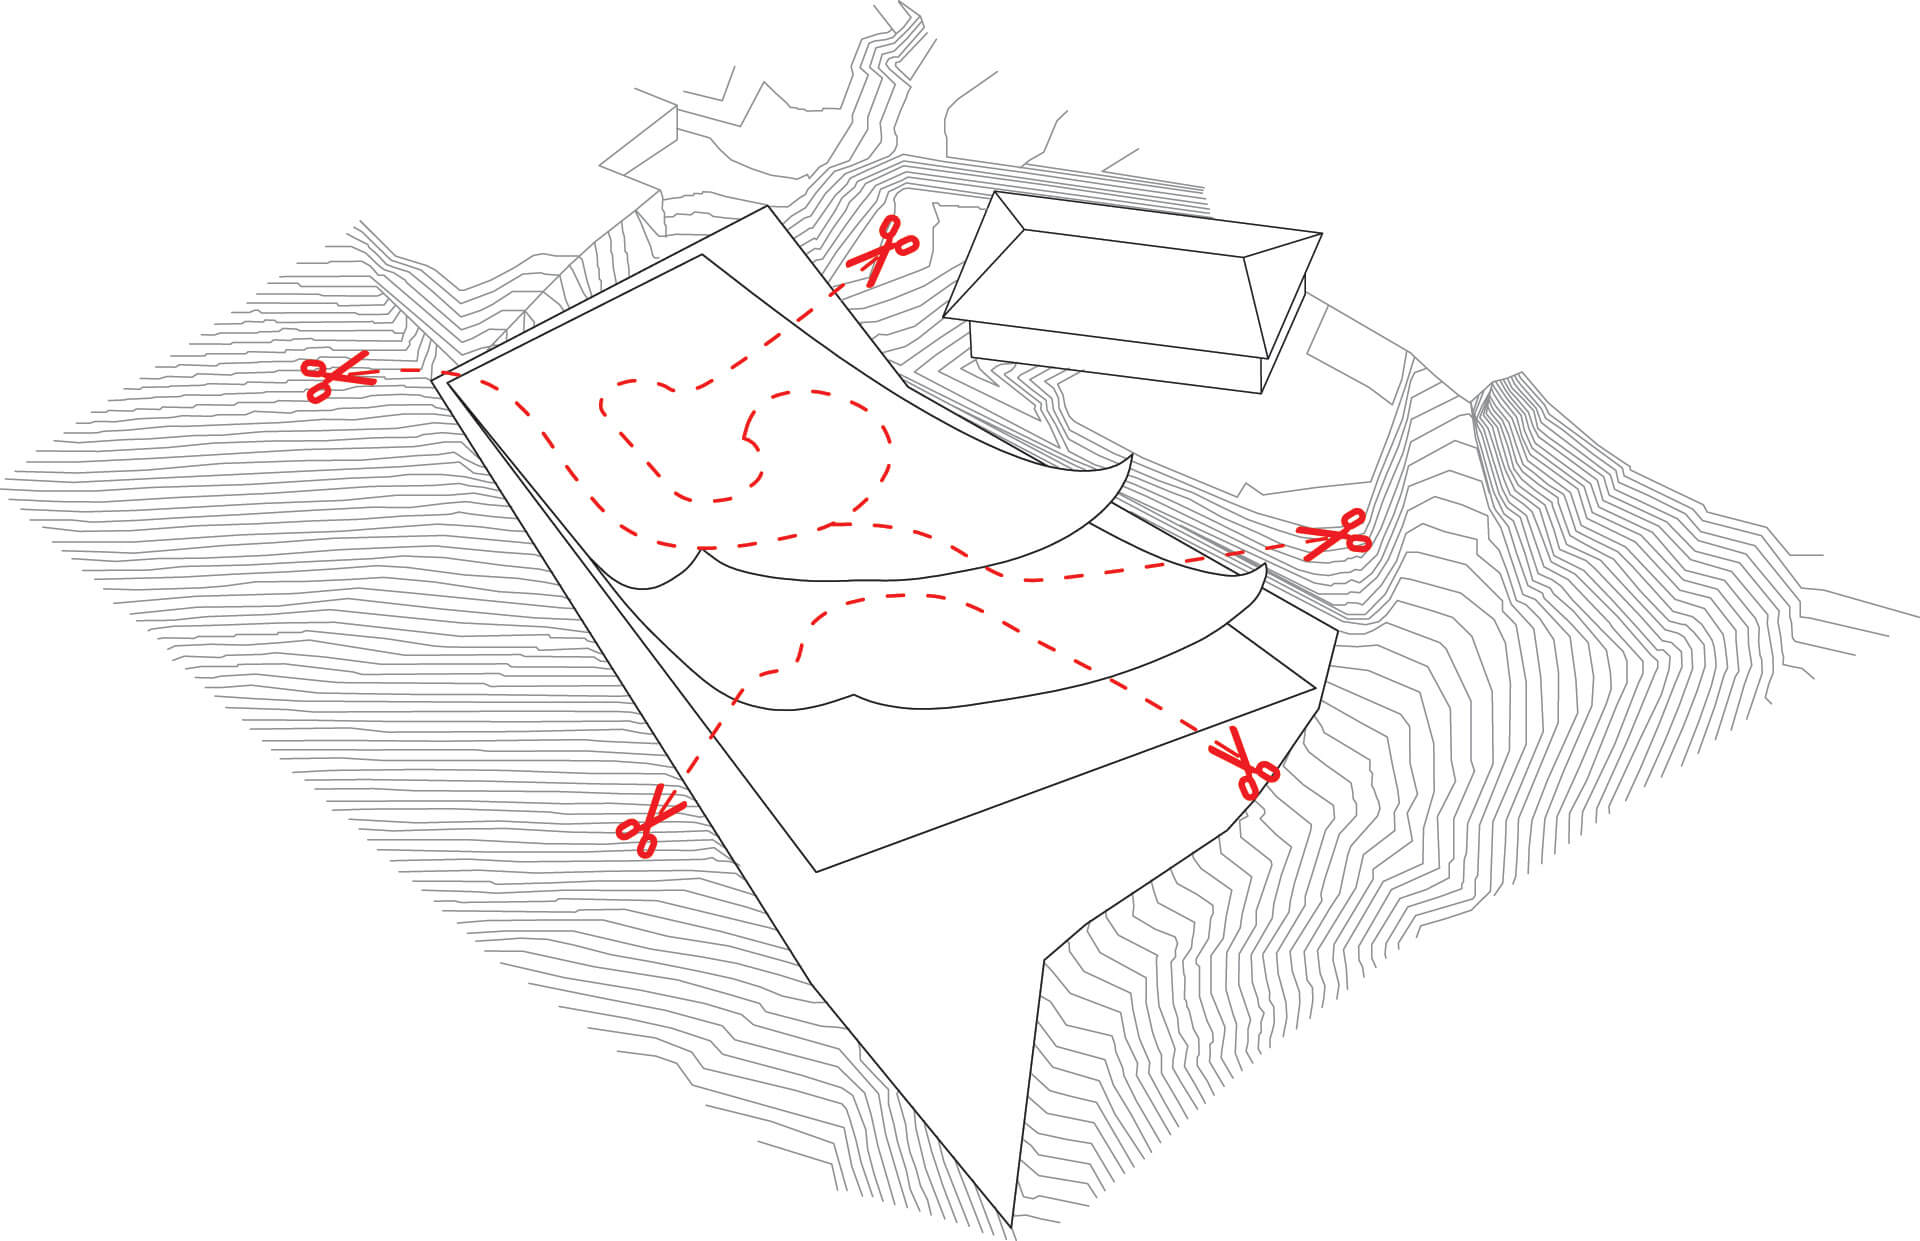 Diagram illustrating how existing contour lines have been cut | Atelier Alice Trepp by Mino Caggiula Architects | STIRworld